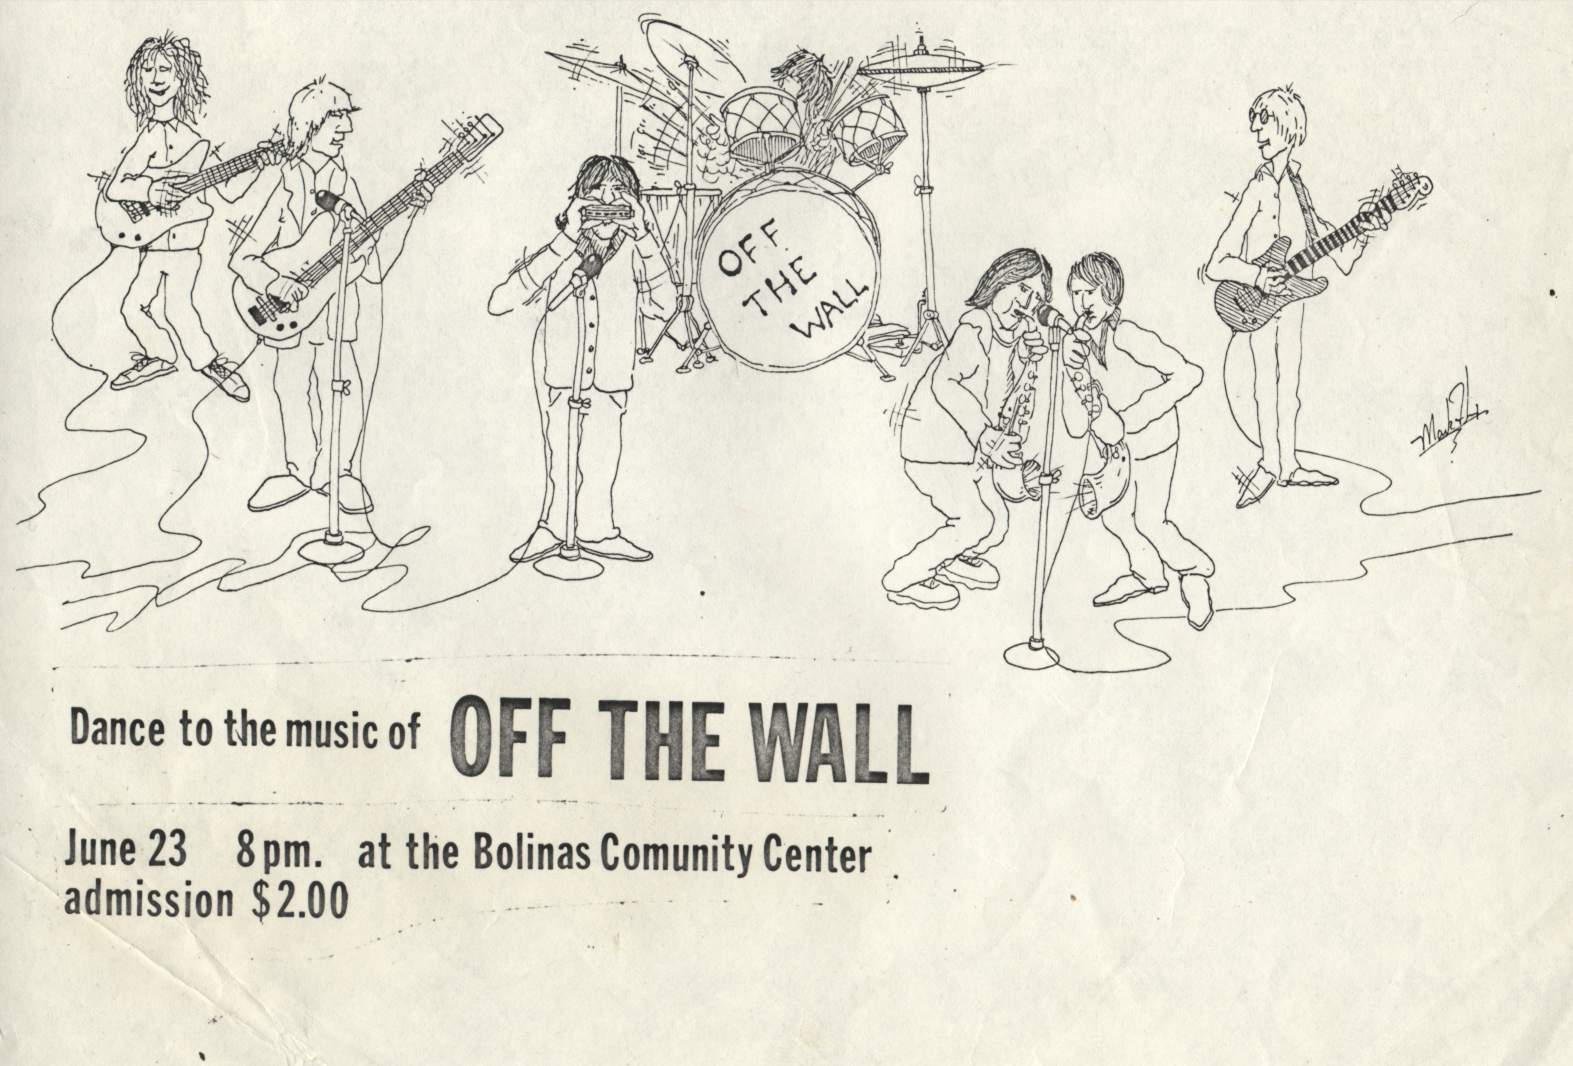 Off the Wall Poster, Bolinas Community Center, 1979, Artwork by Mark Felix